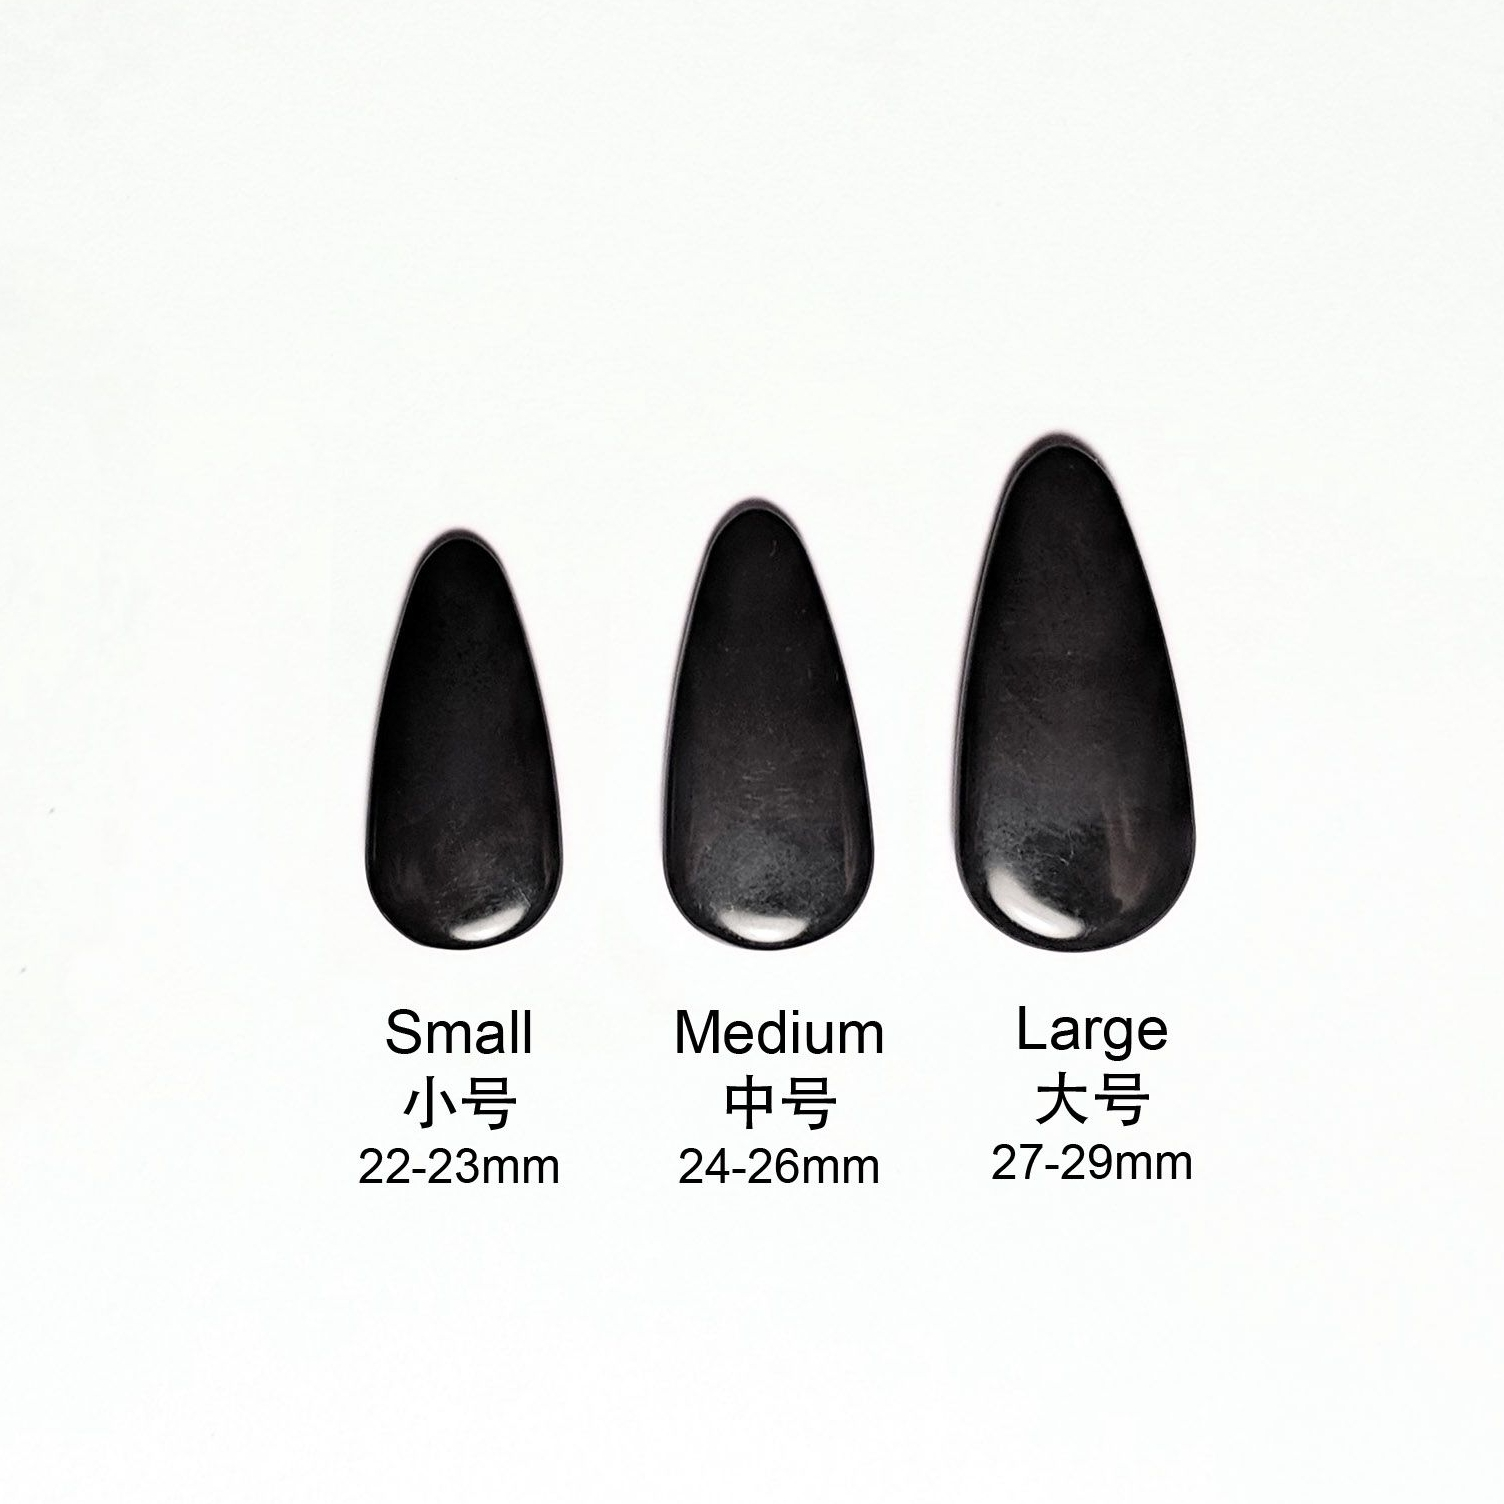 Example nail length from small to large.